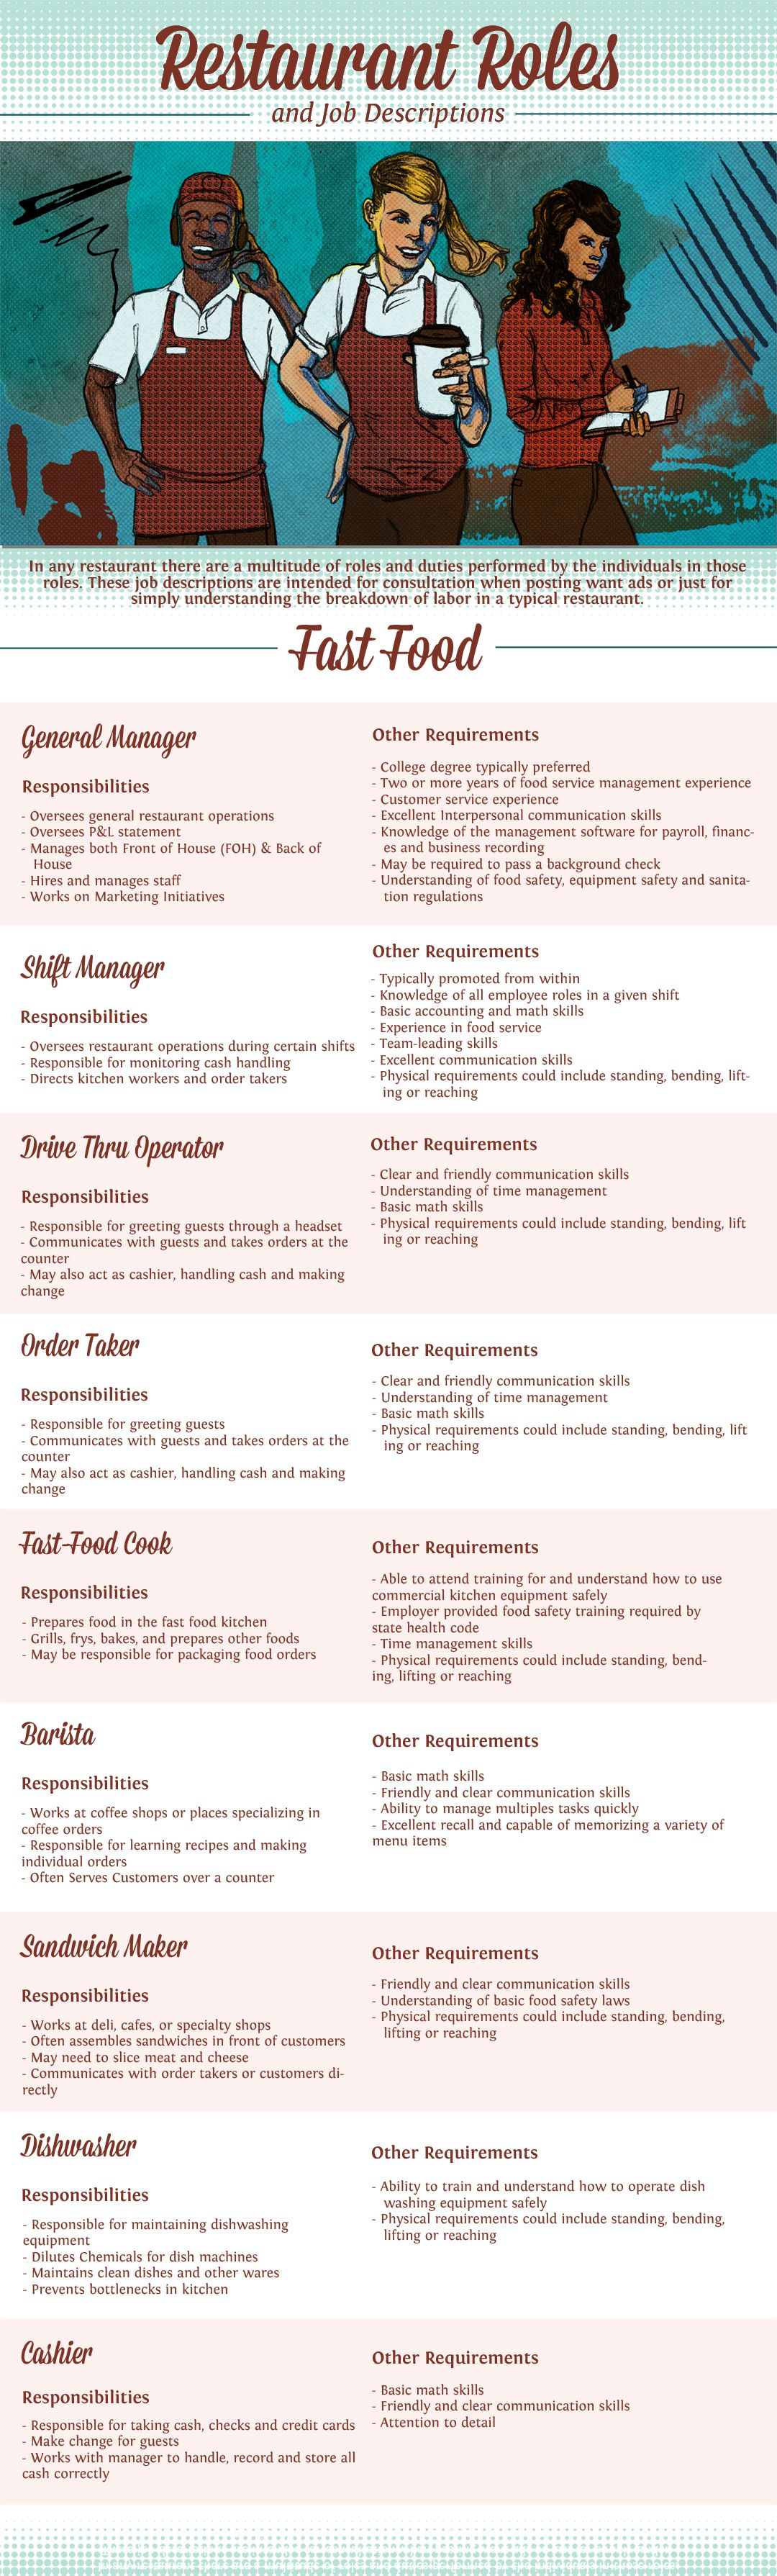 fast food restaurant job descriptions infographic infographic fast food restaurant job descriptions infographic